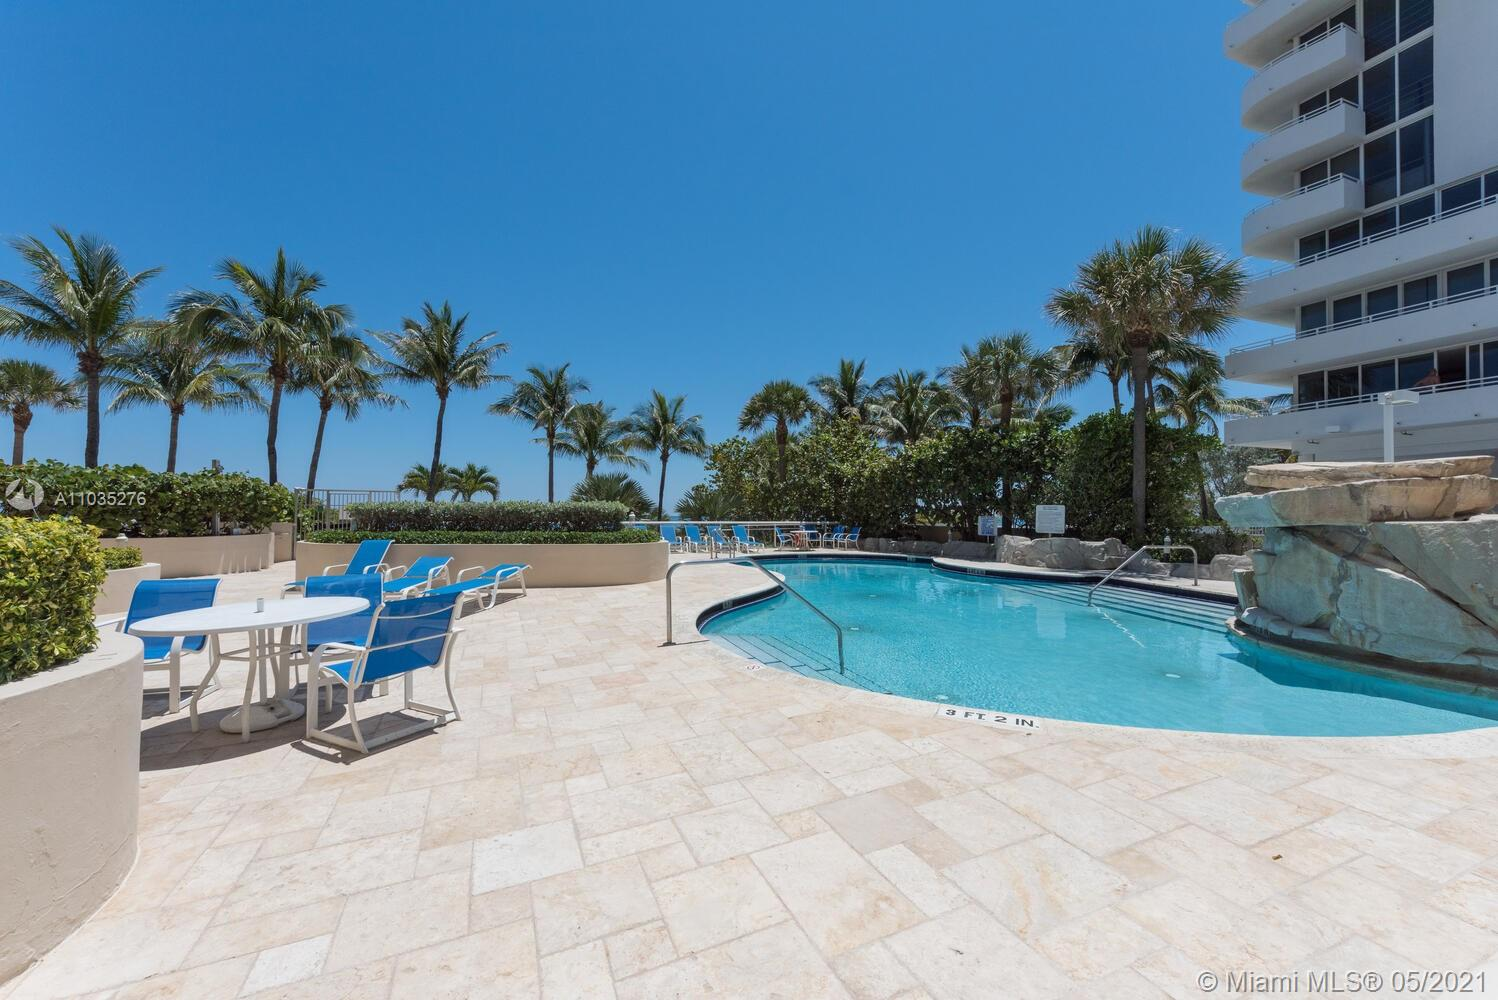 Photo of 8925 Collins Ave #4F, Surfside, Florida, 33154 - Media room, could be used as a bedroom.